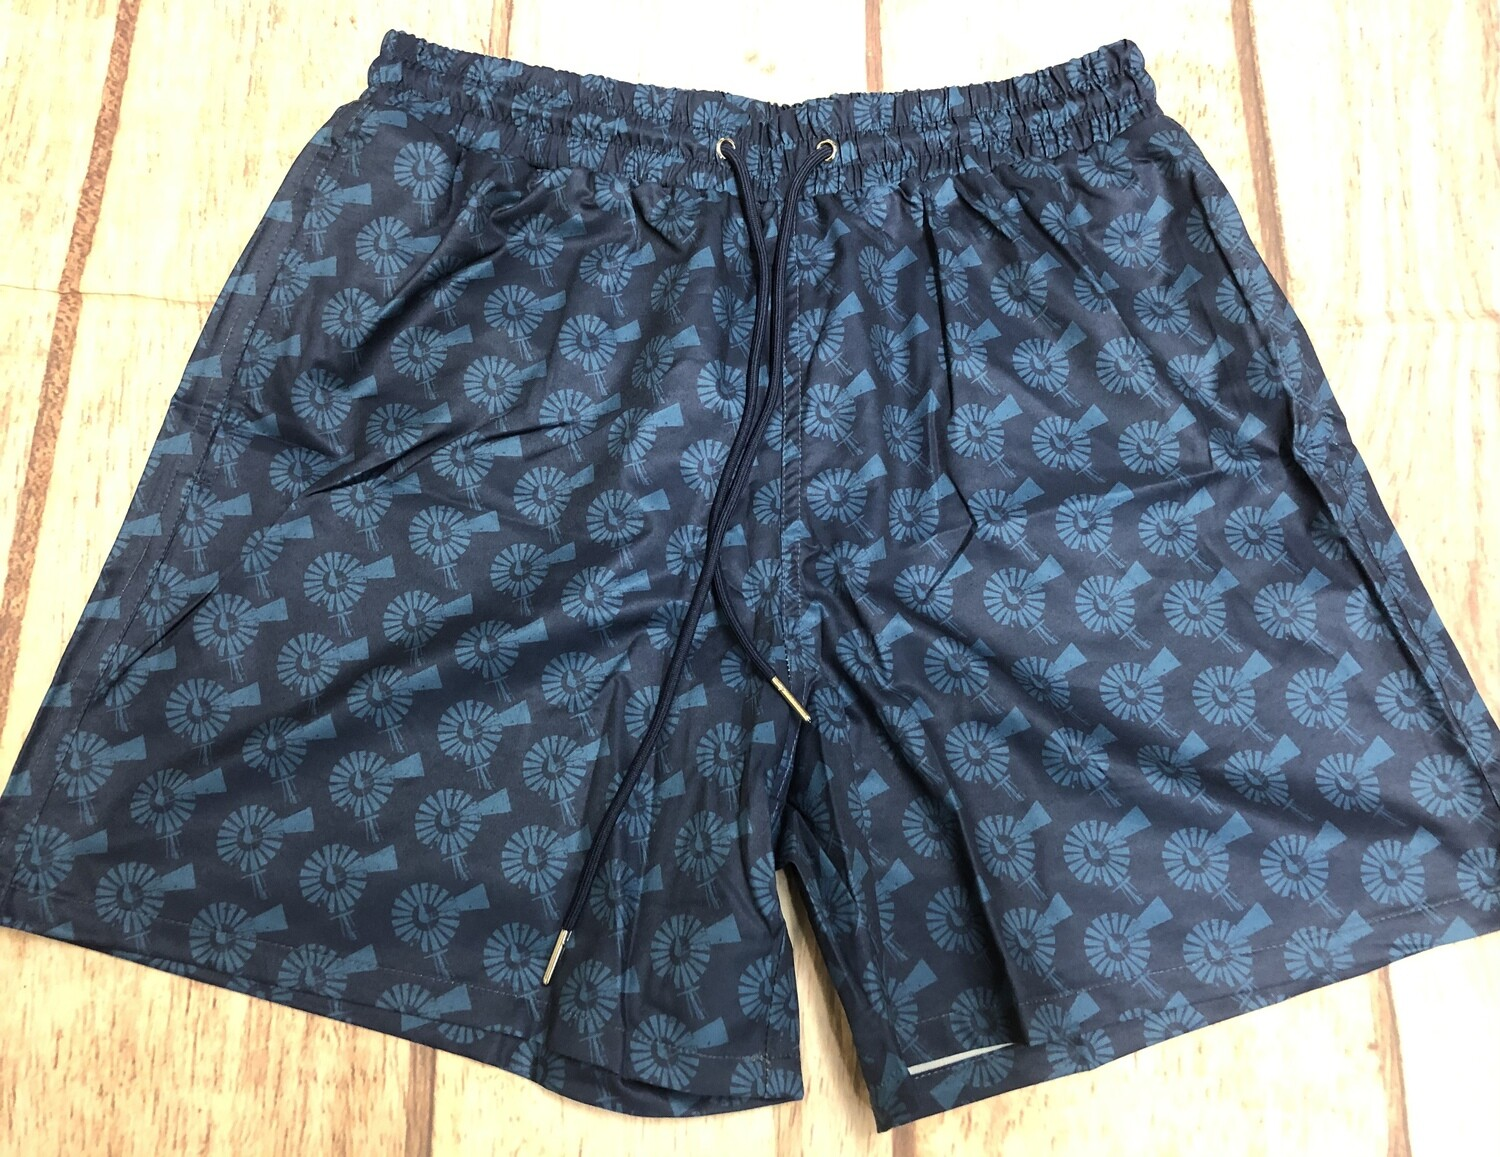 Old South Classic Swim Trunks